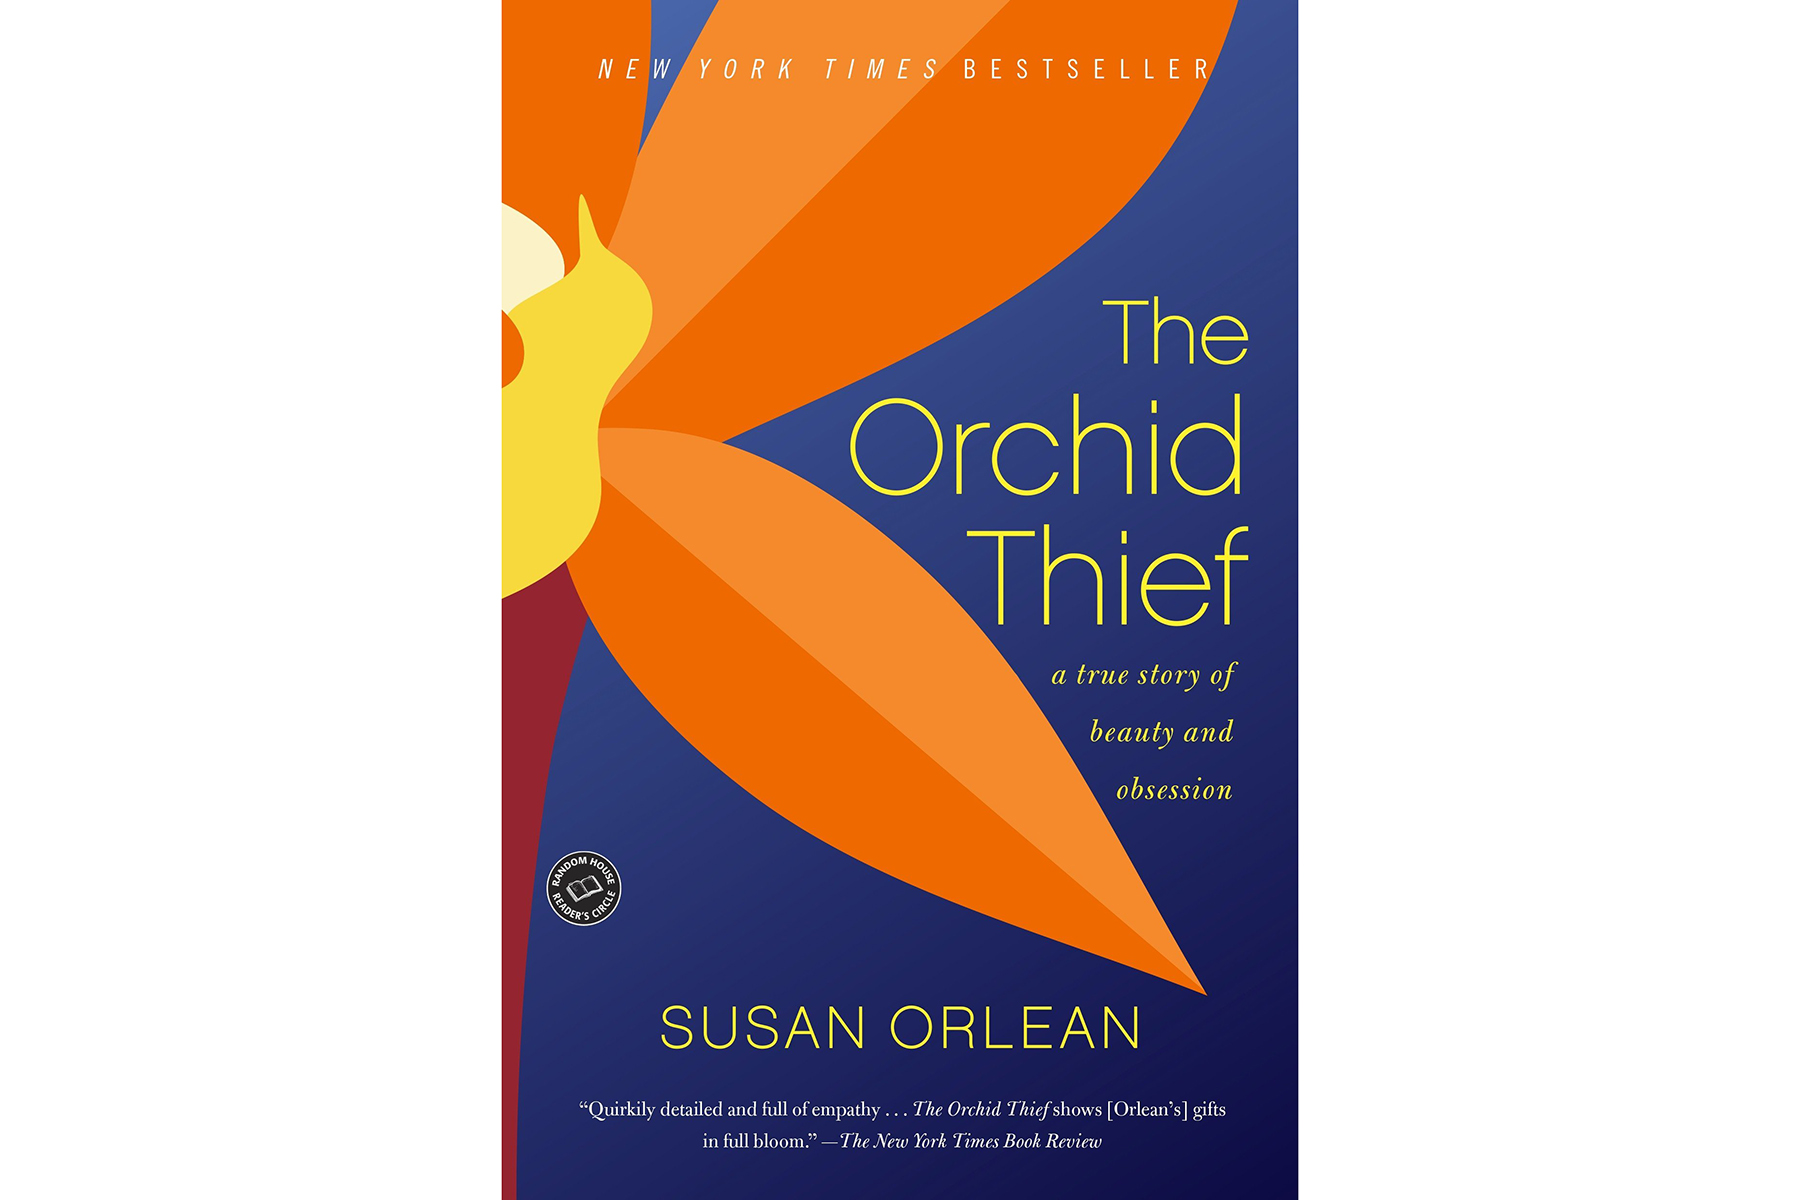 Cover of The Orchid Thief, by Susan Orlean